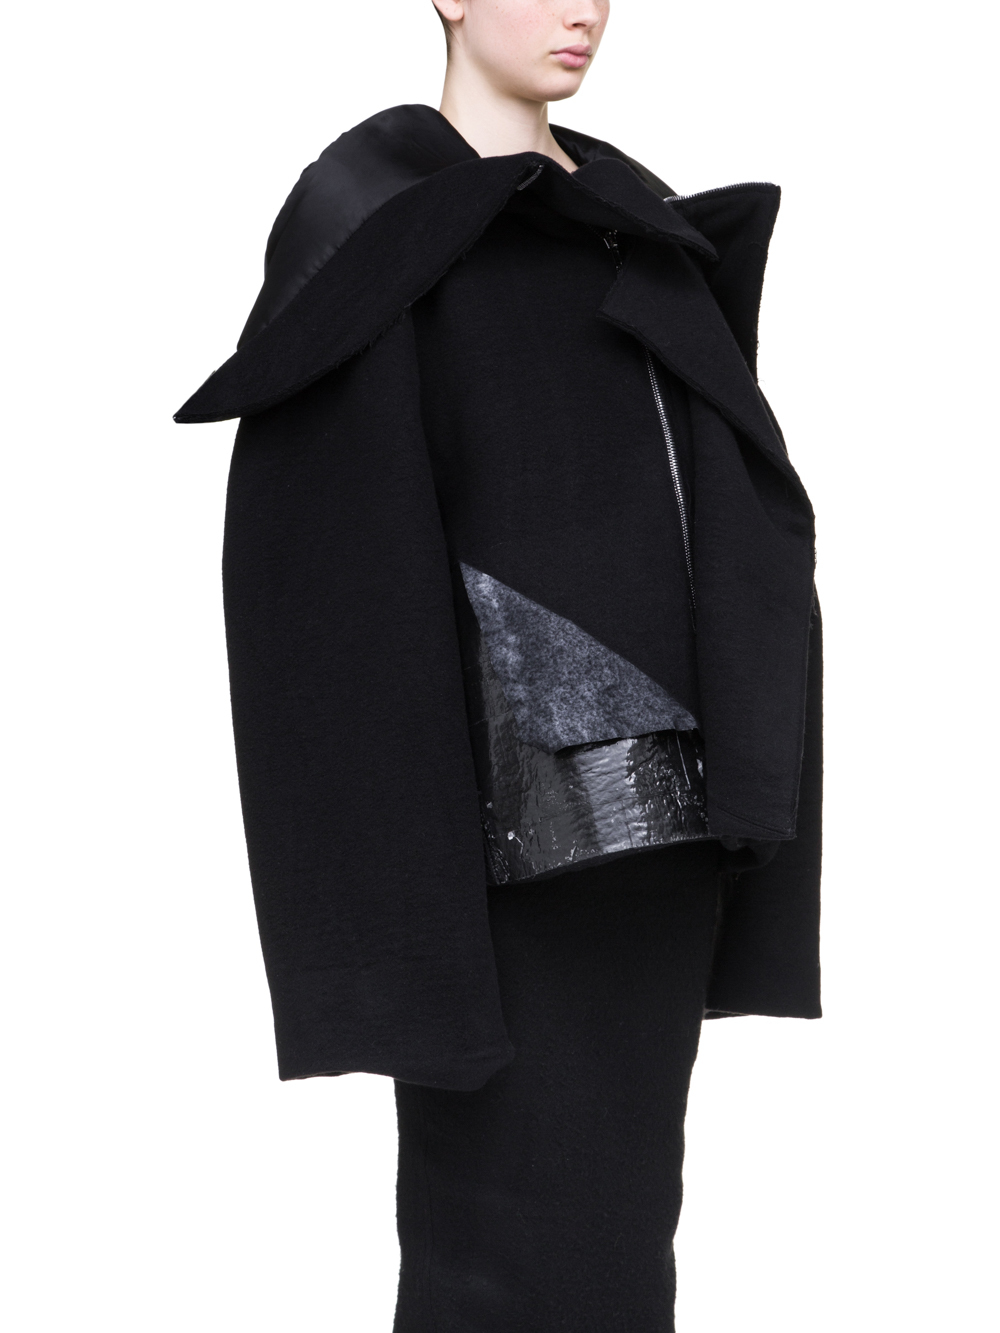 RICK OWENS OFF-THE-RUNWAY SHORT SECRET PARKA IN BLACK DOUBLE CASHMERE